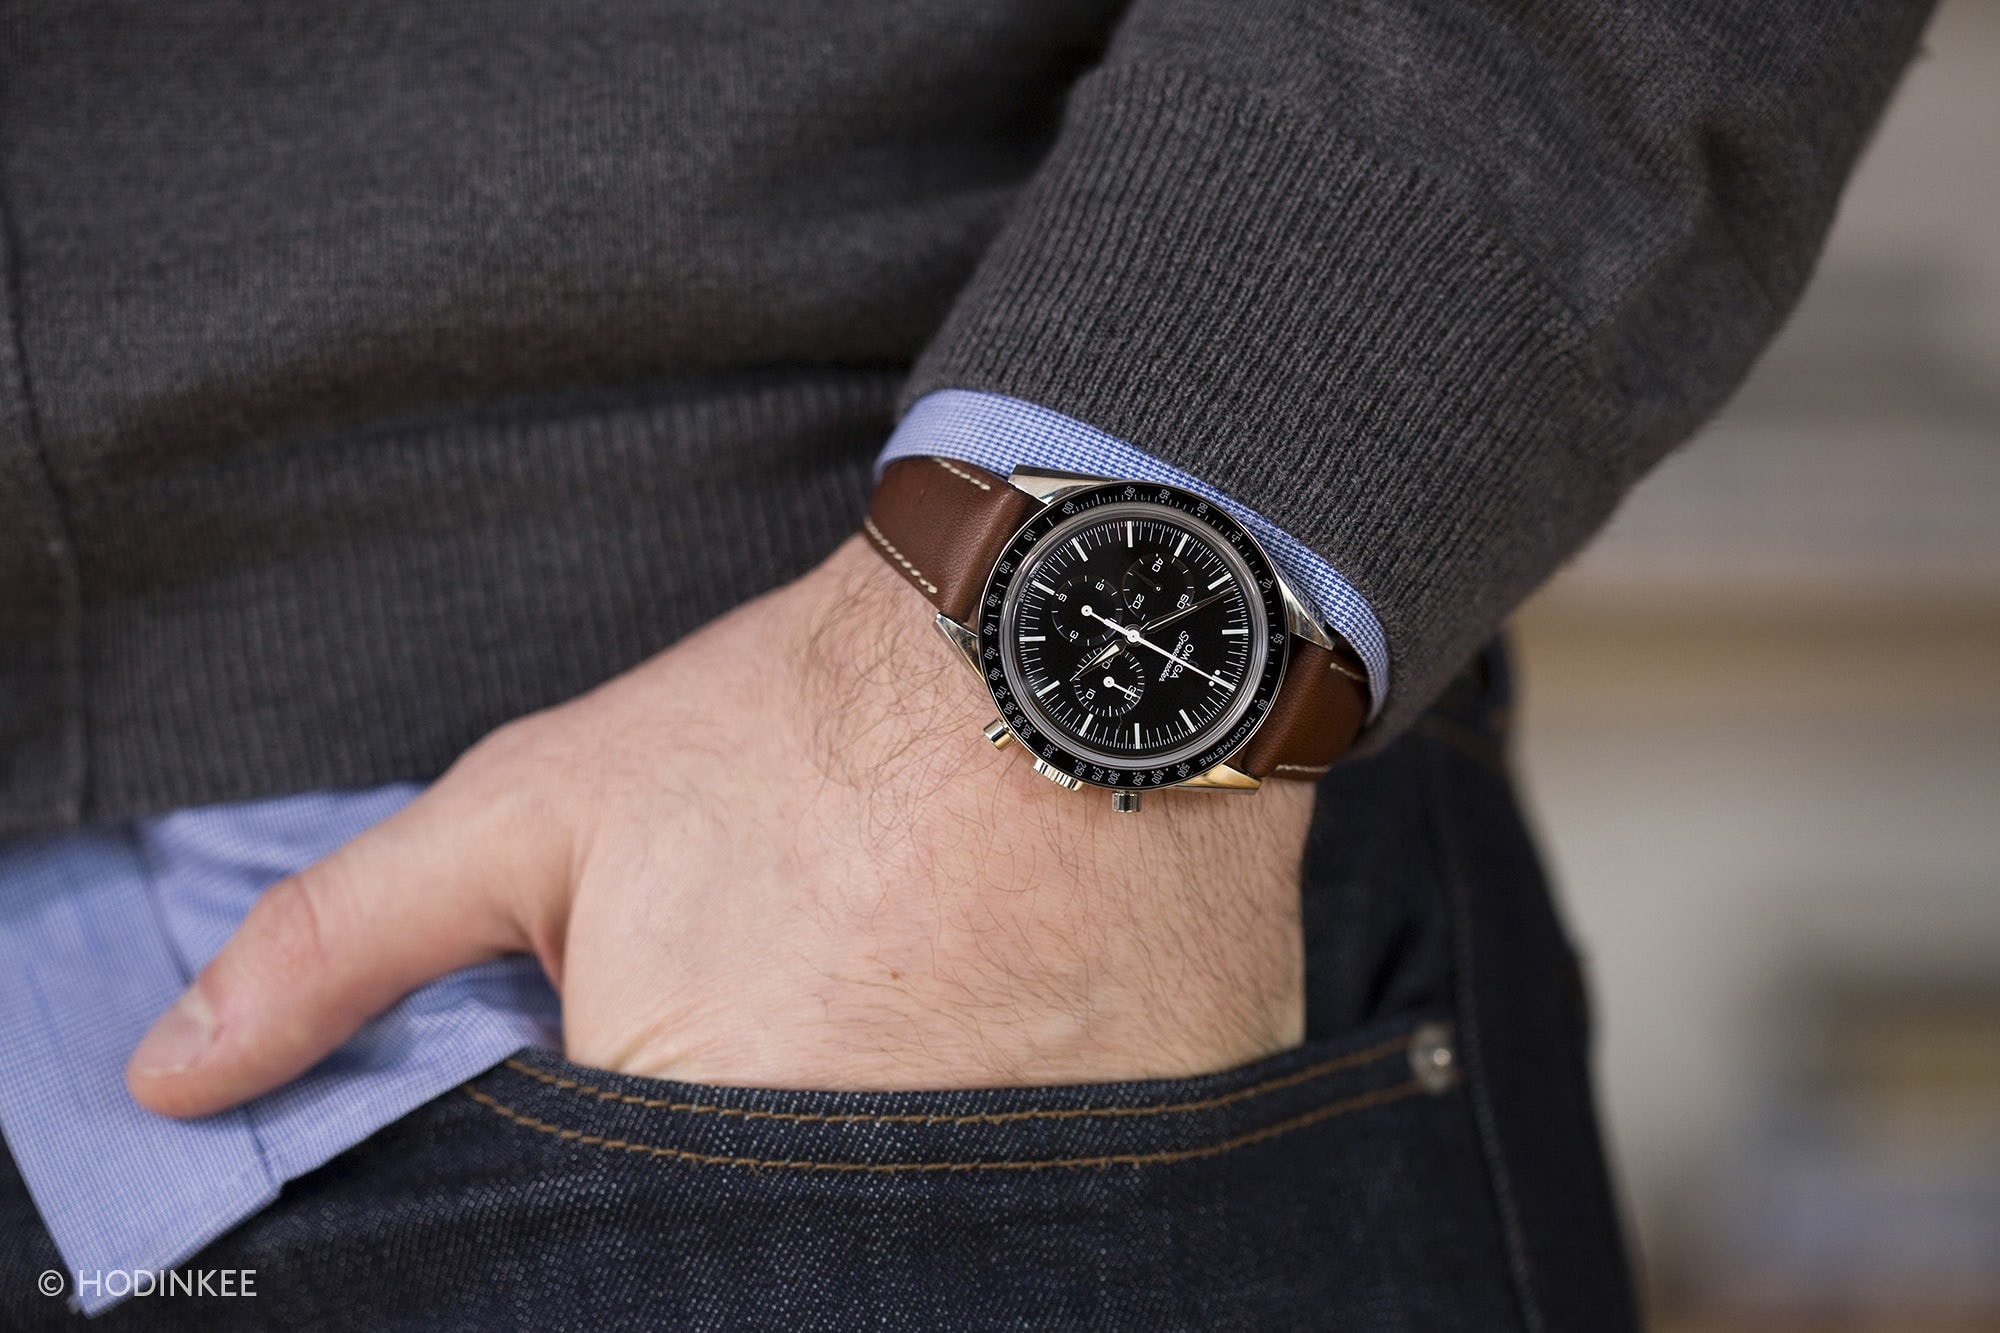 A Week On The Wrist: Ten Of The Biggest, Baddest HODINKEE Reviews Ever A Week On The Wrist: Ten Of The Biggest, Baddest HODINKEE Reviews Ever omega